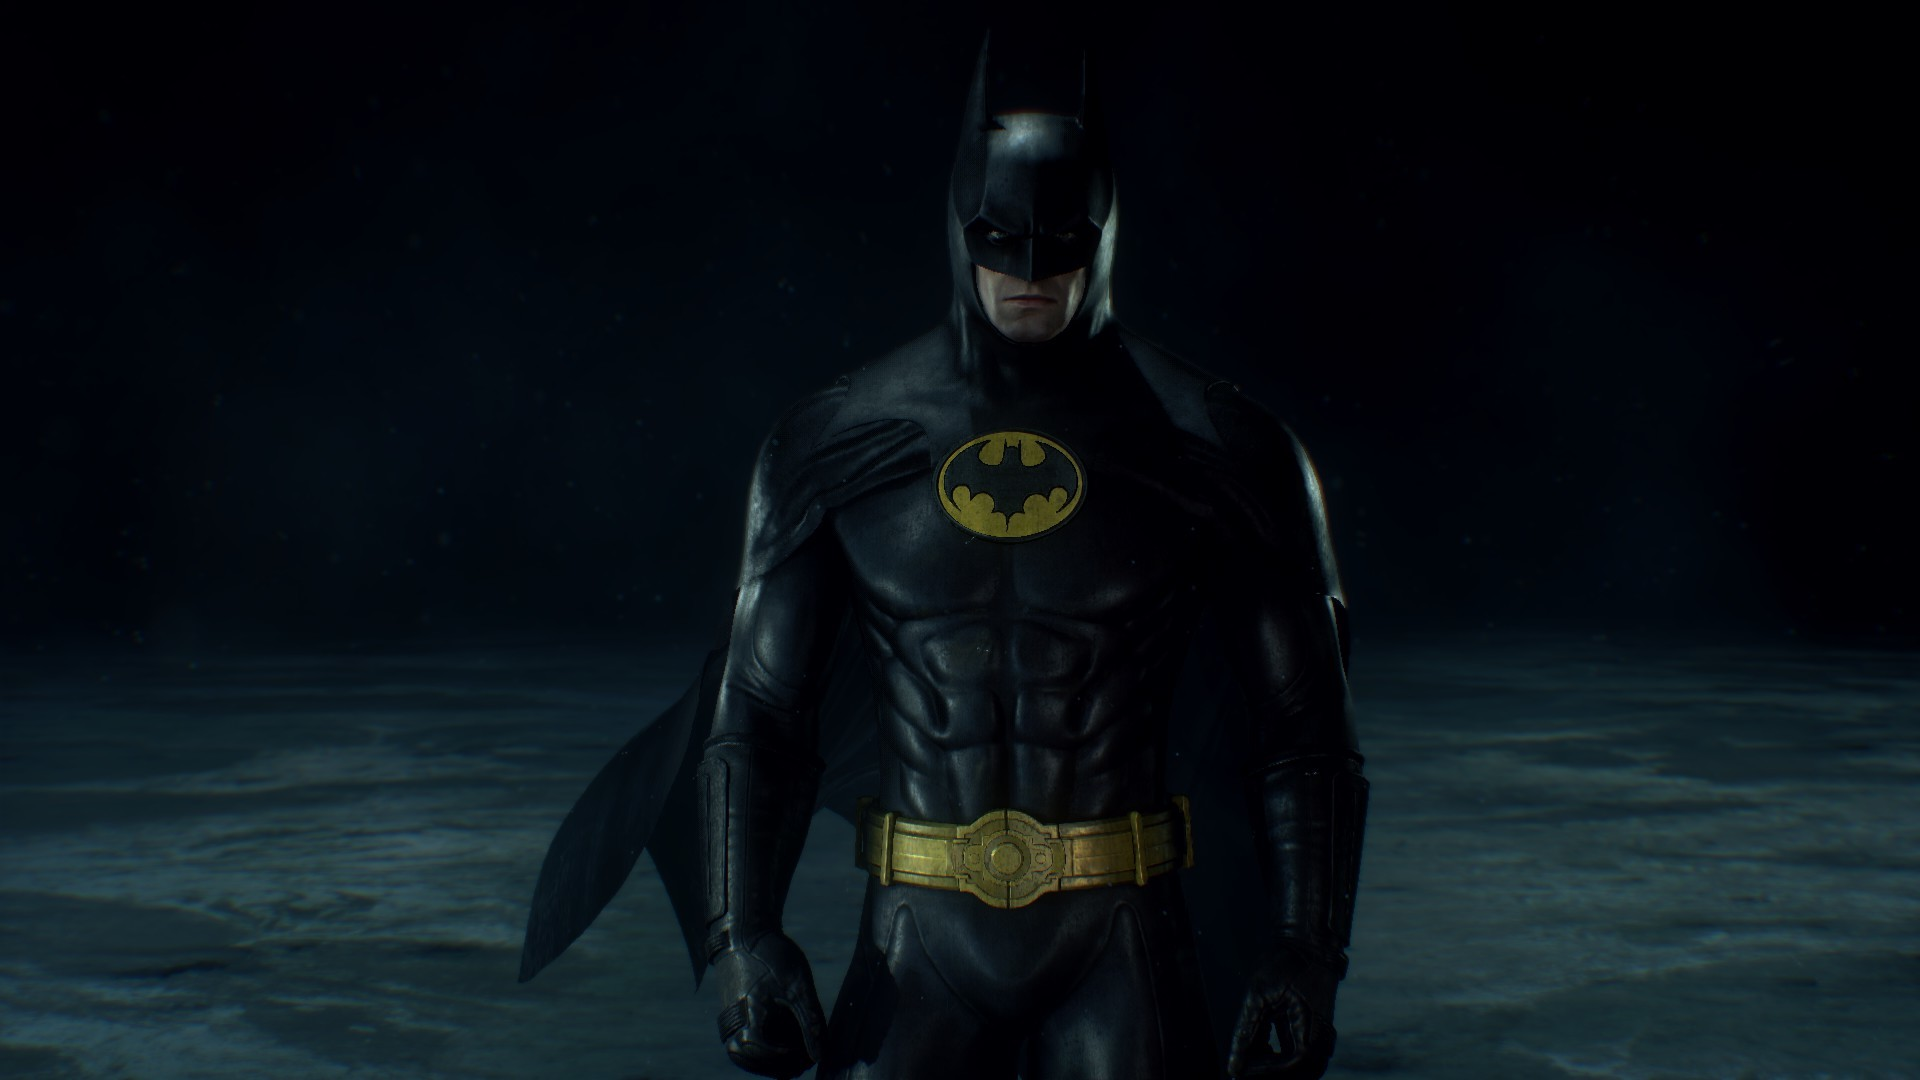 1920x1080 Image result for Tim Burton batsuit skin